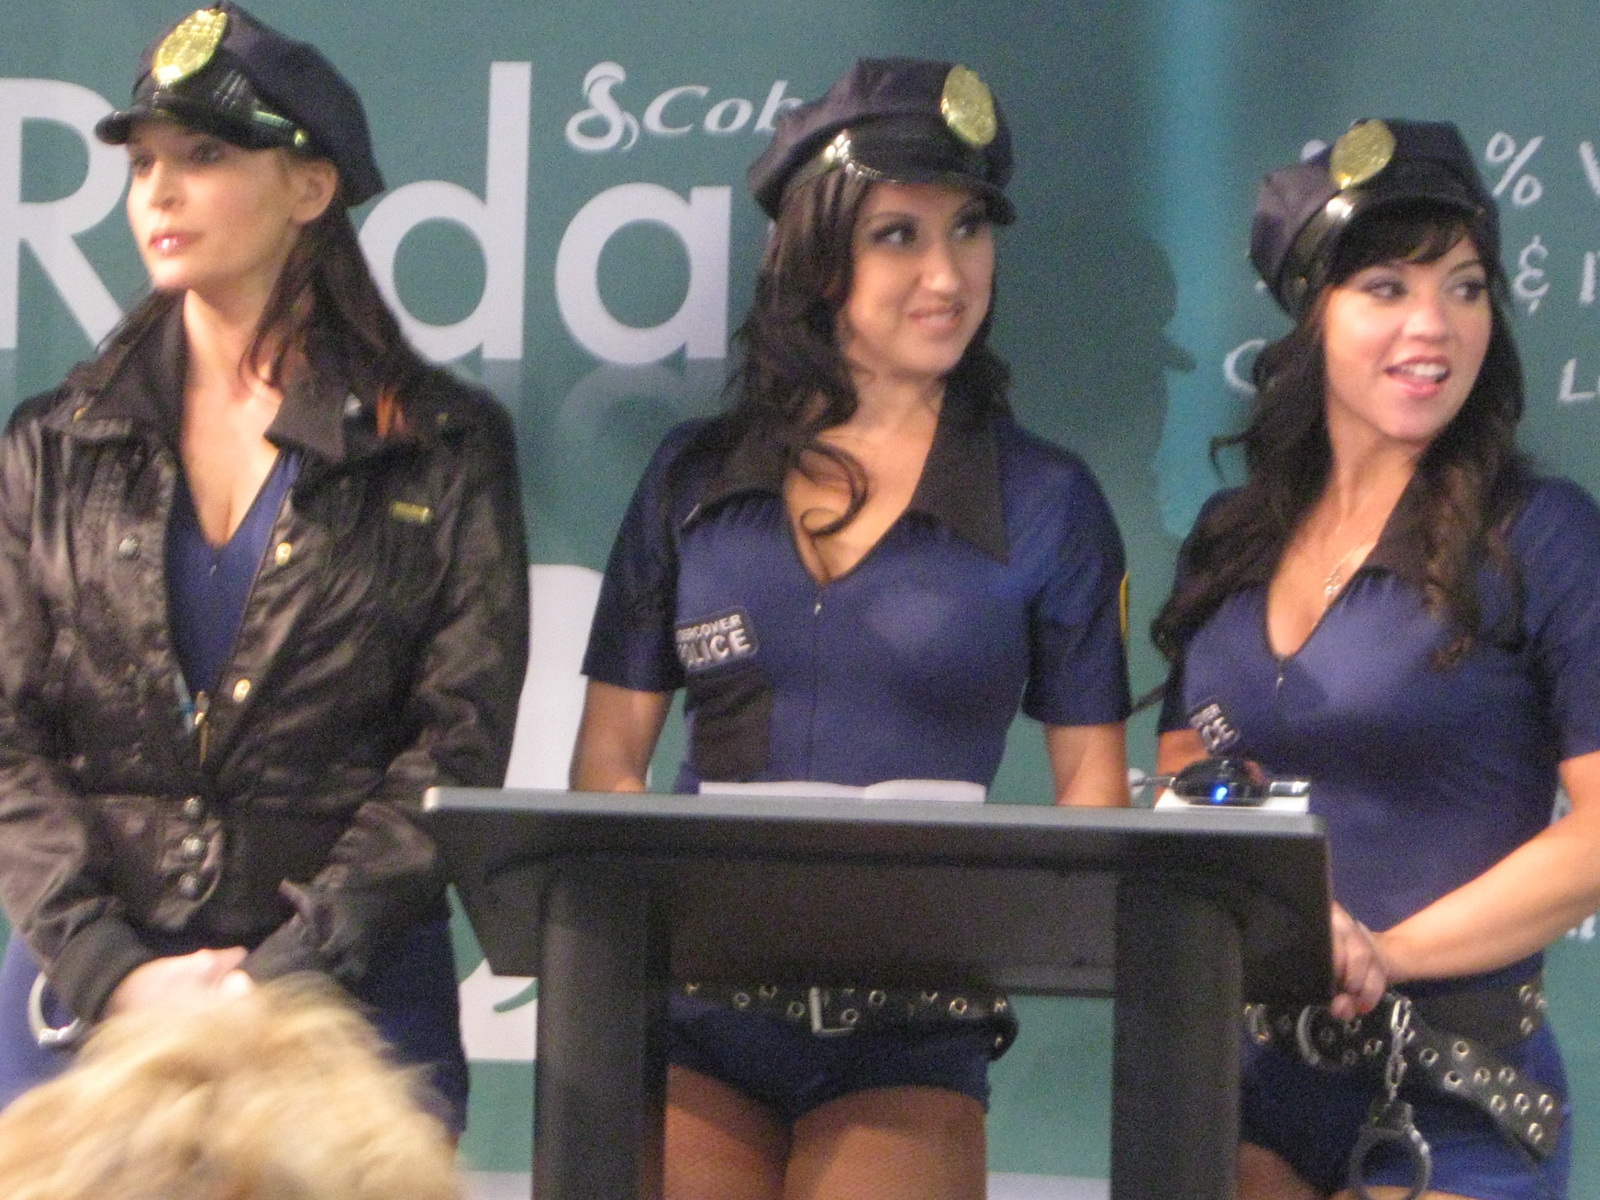 Lady Cop Booth Babes at CES 2011